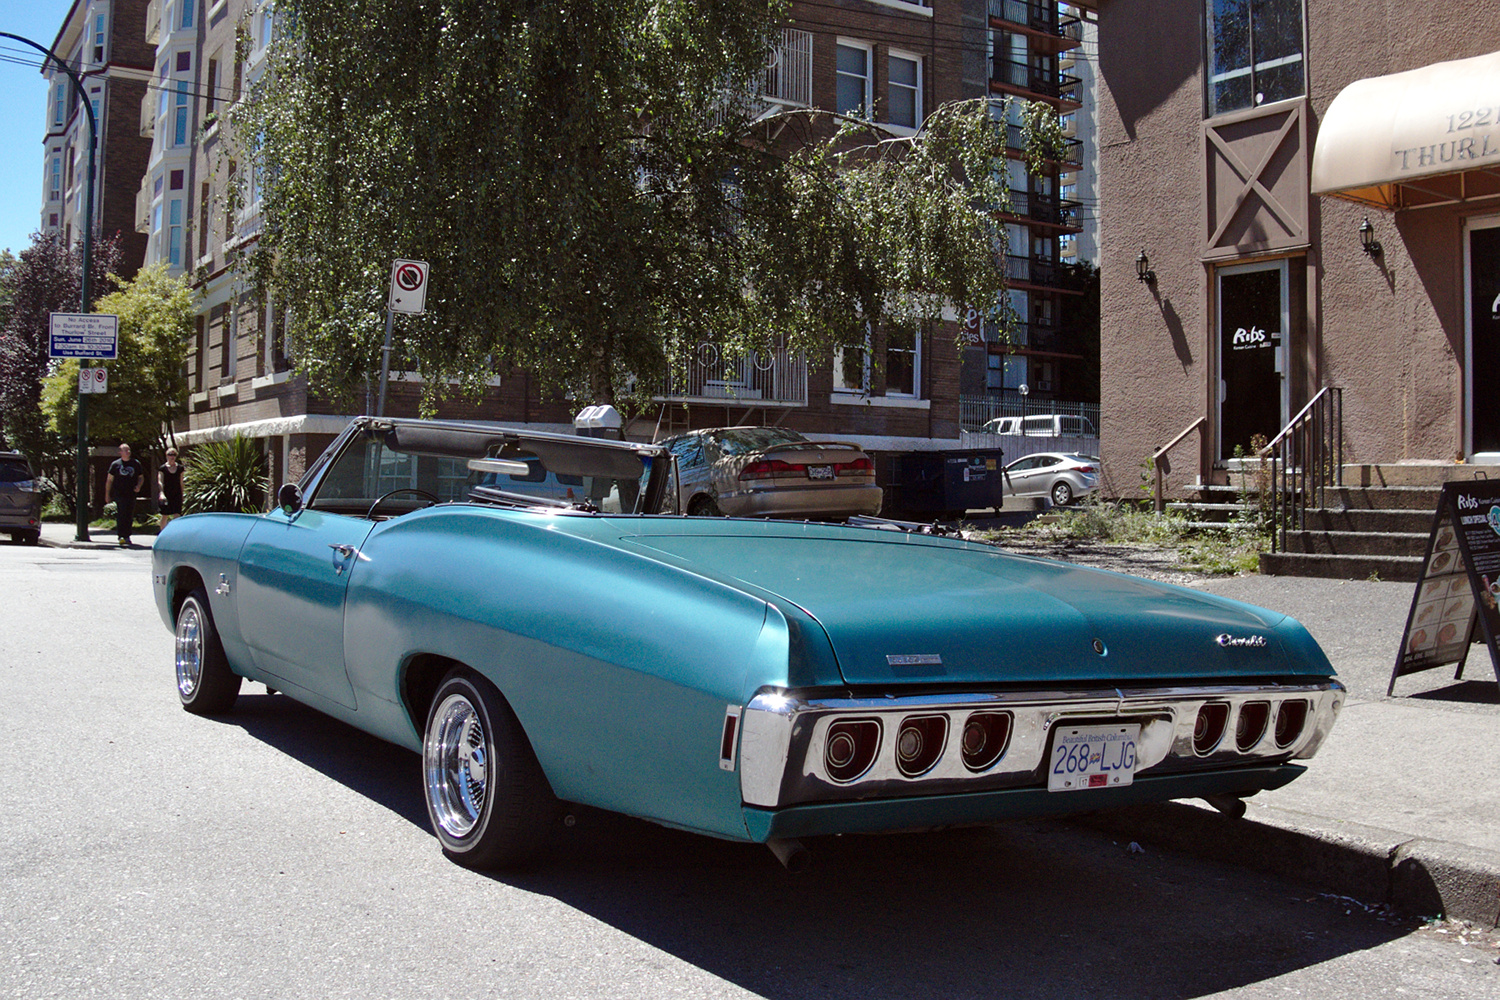 Old Parked Cars Vancouver: 1968 Chevrolet Impala Convertible